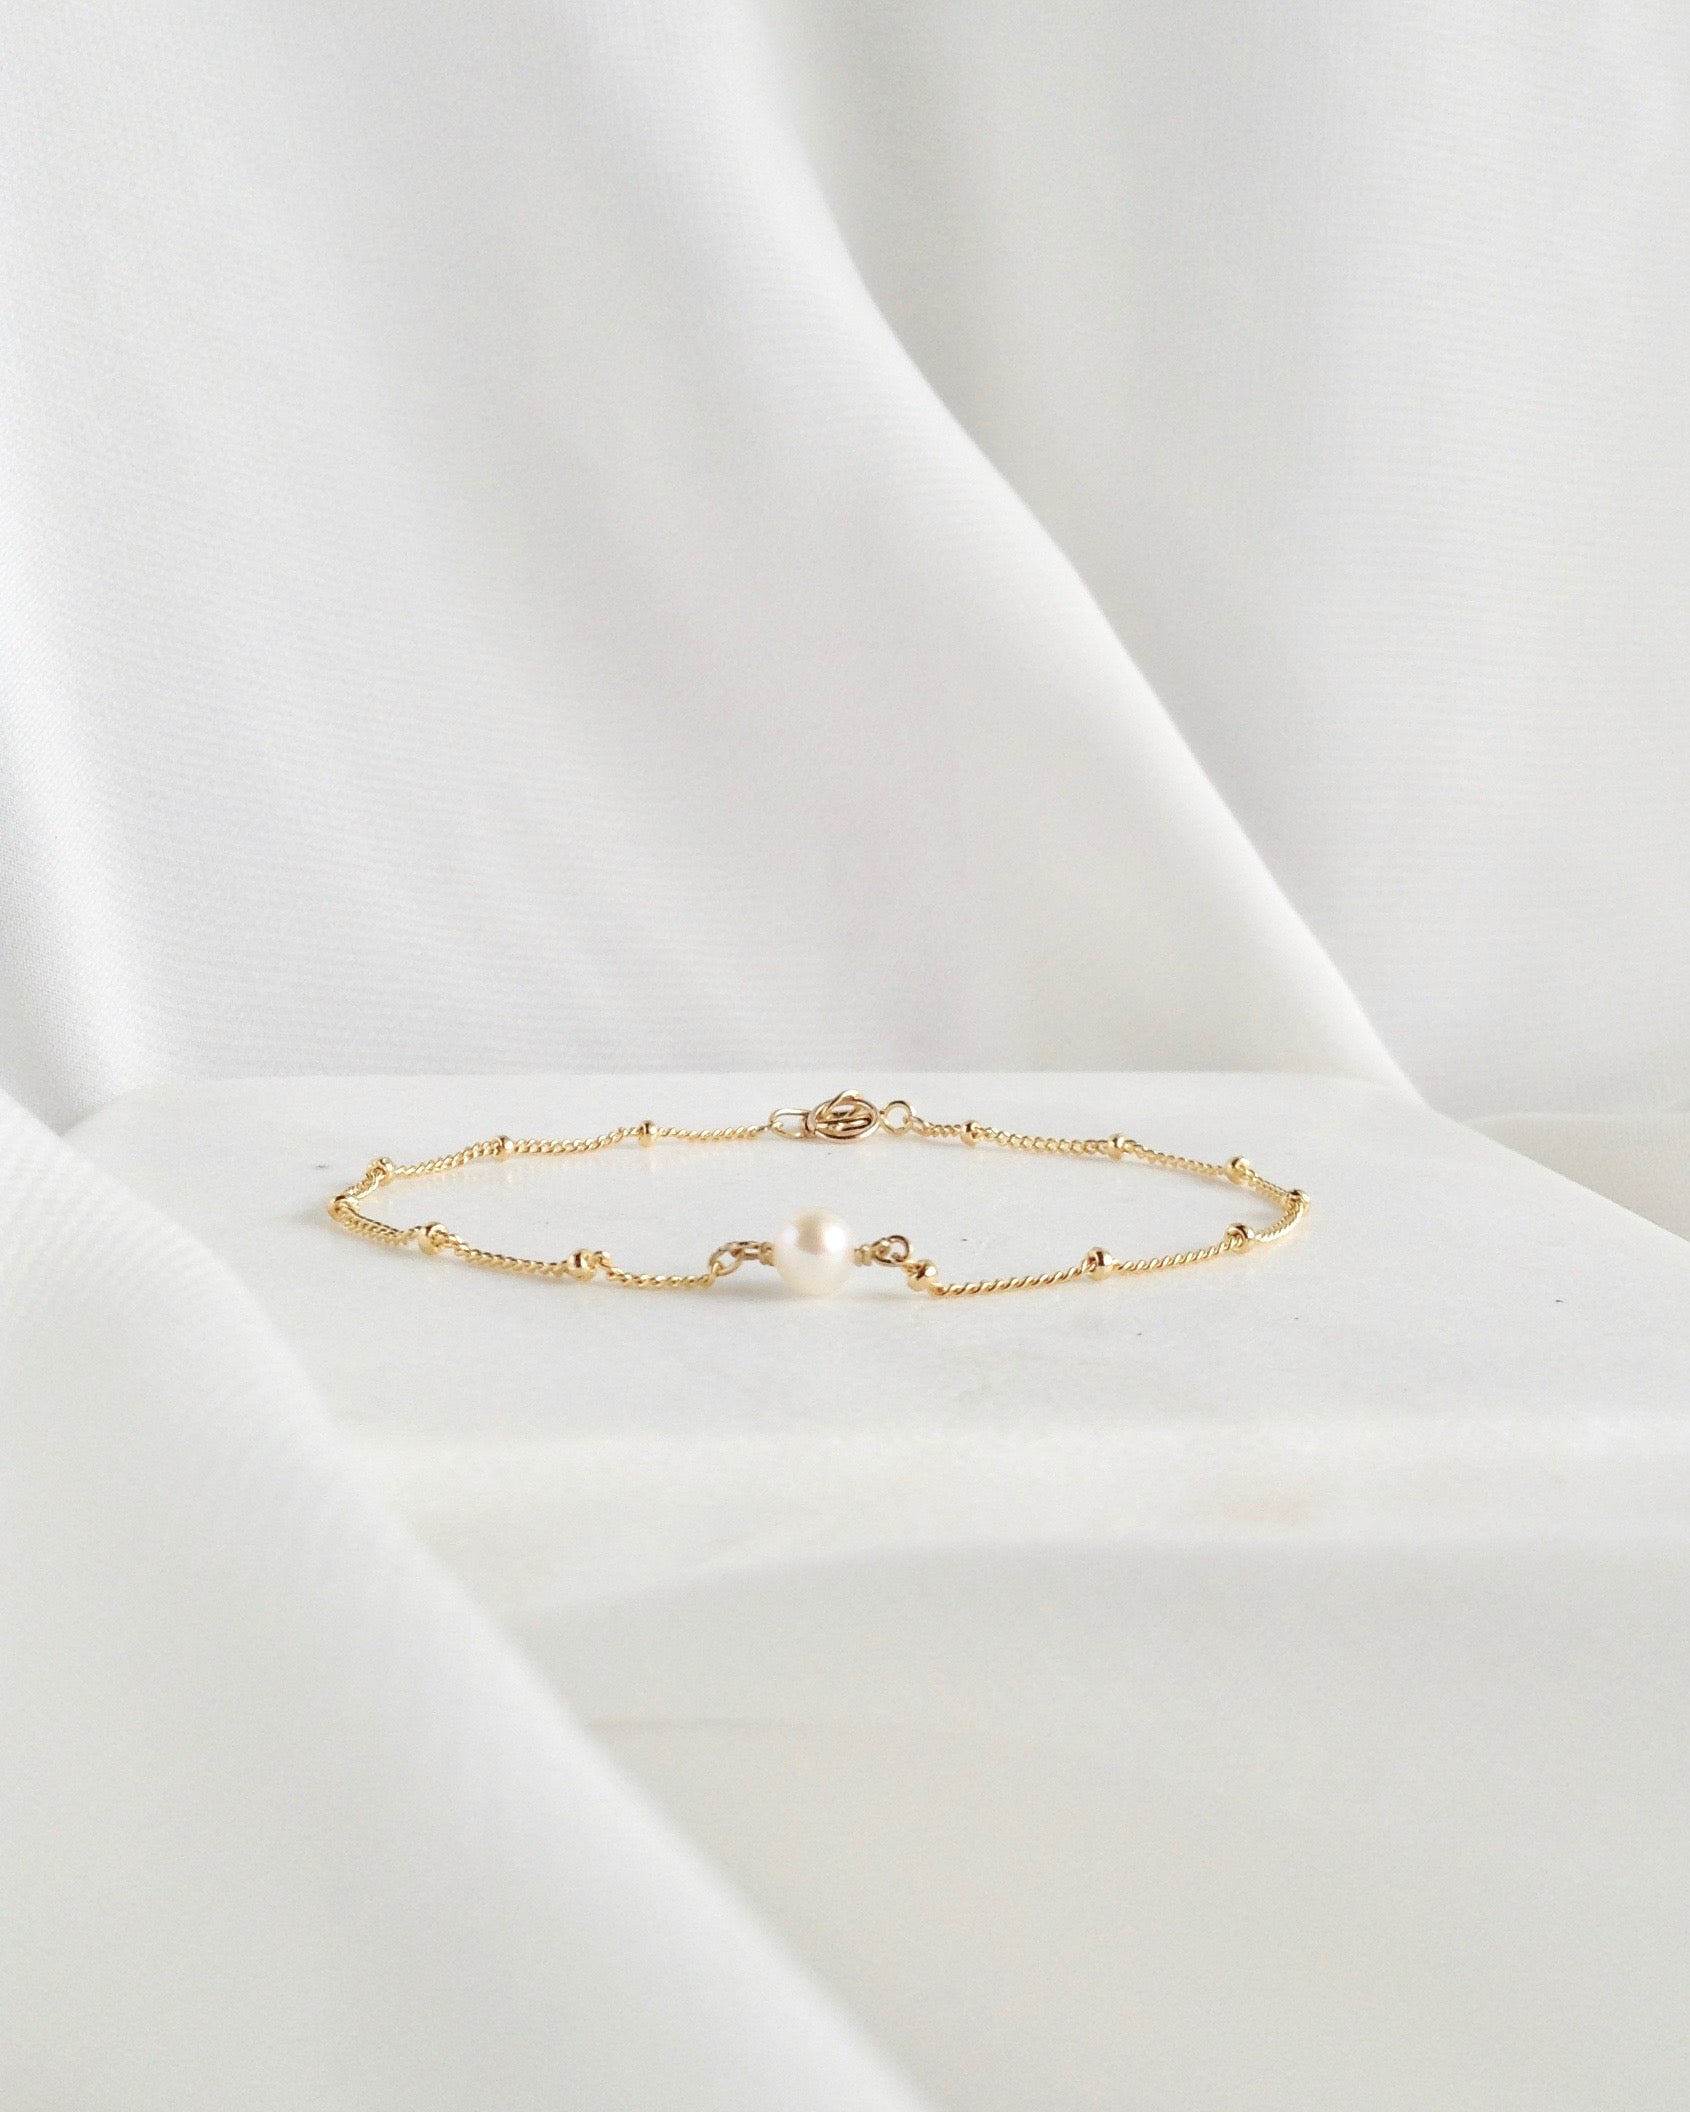 Dainty Pearl Bracelet In Gold Filled or Sterling Silver | IB Jewelry